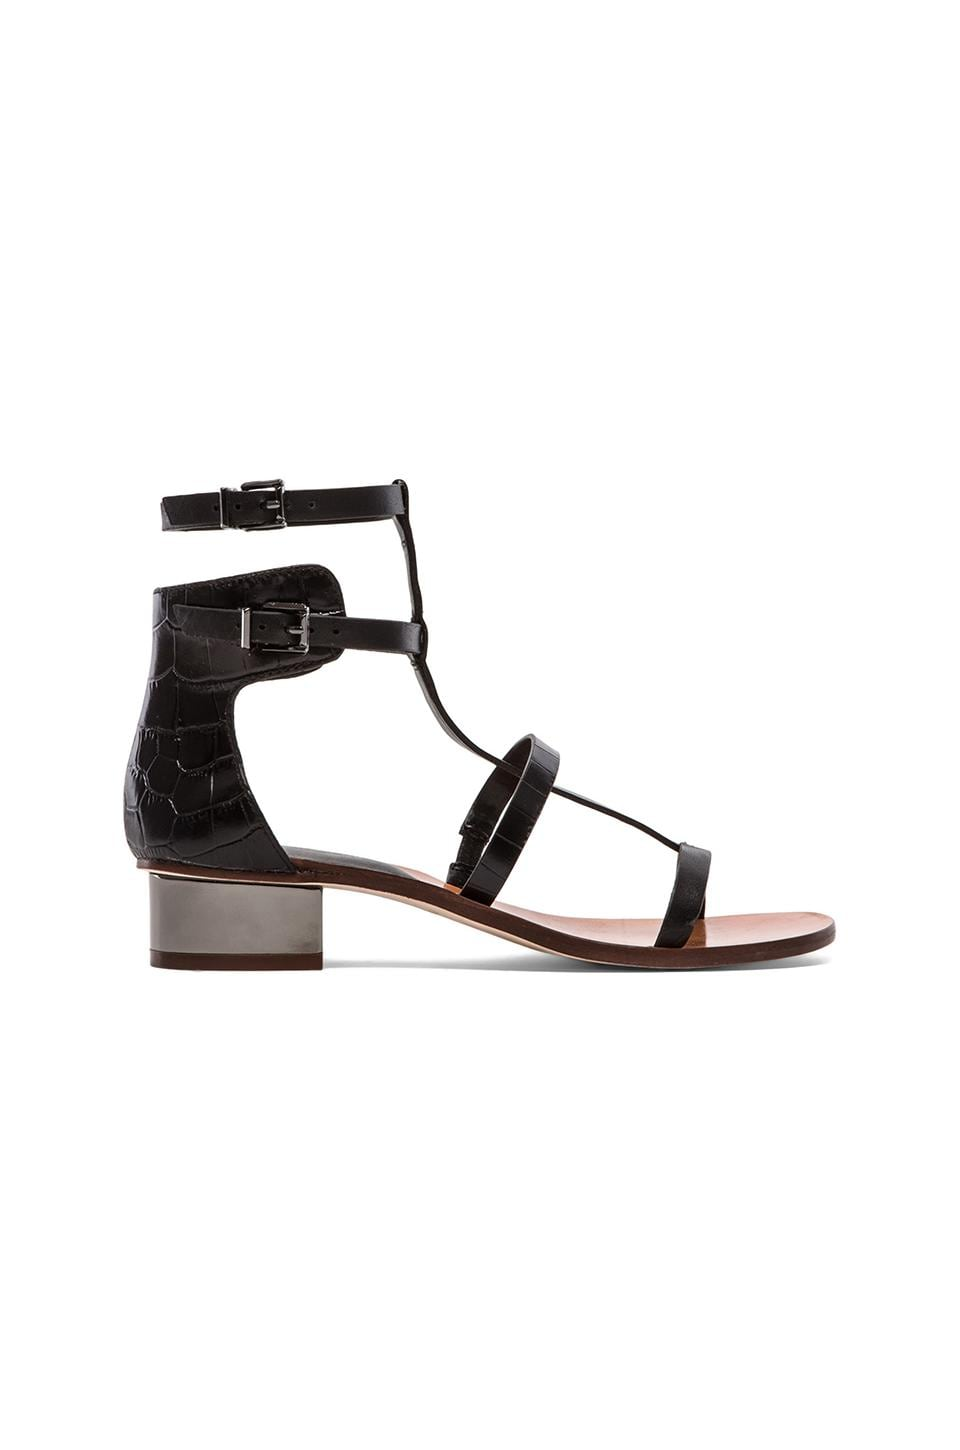 BCBGMAXAZRIA Cross Sandals in Black